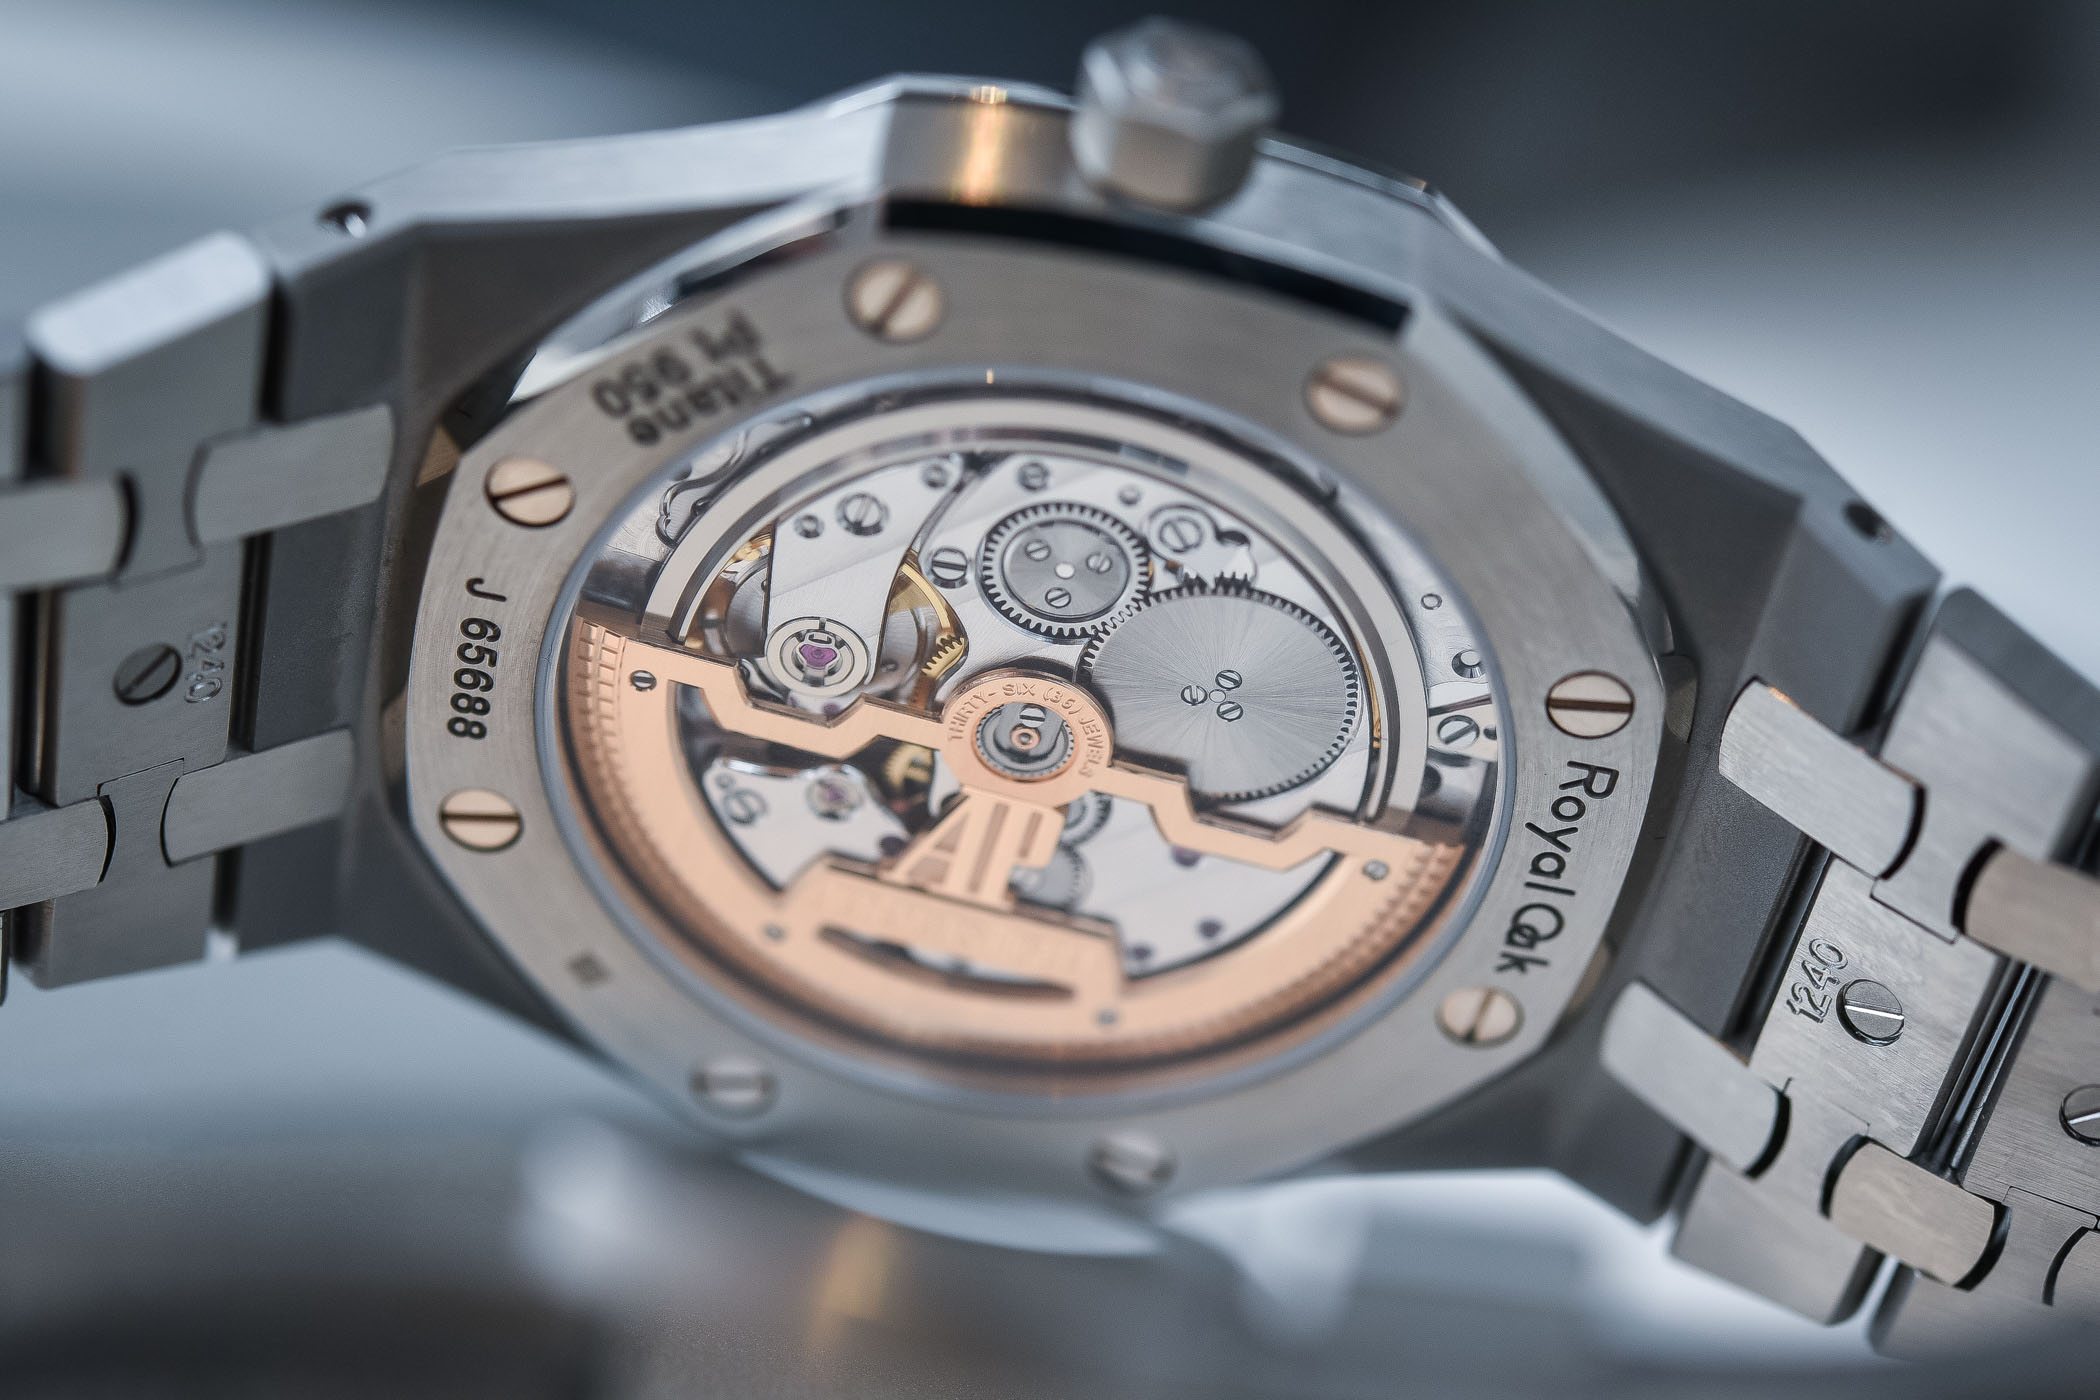 Audemars Piguet Royal Oak Jumbo Extra-Thin 15202IP titanium-platinum smoked blue dial SIHH 2018